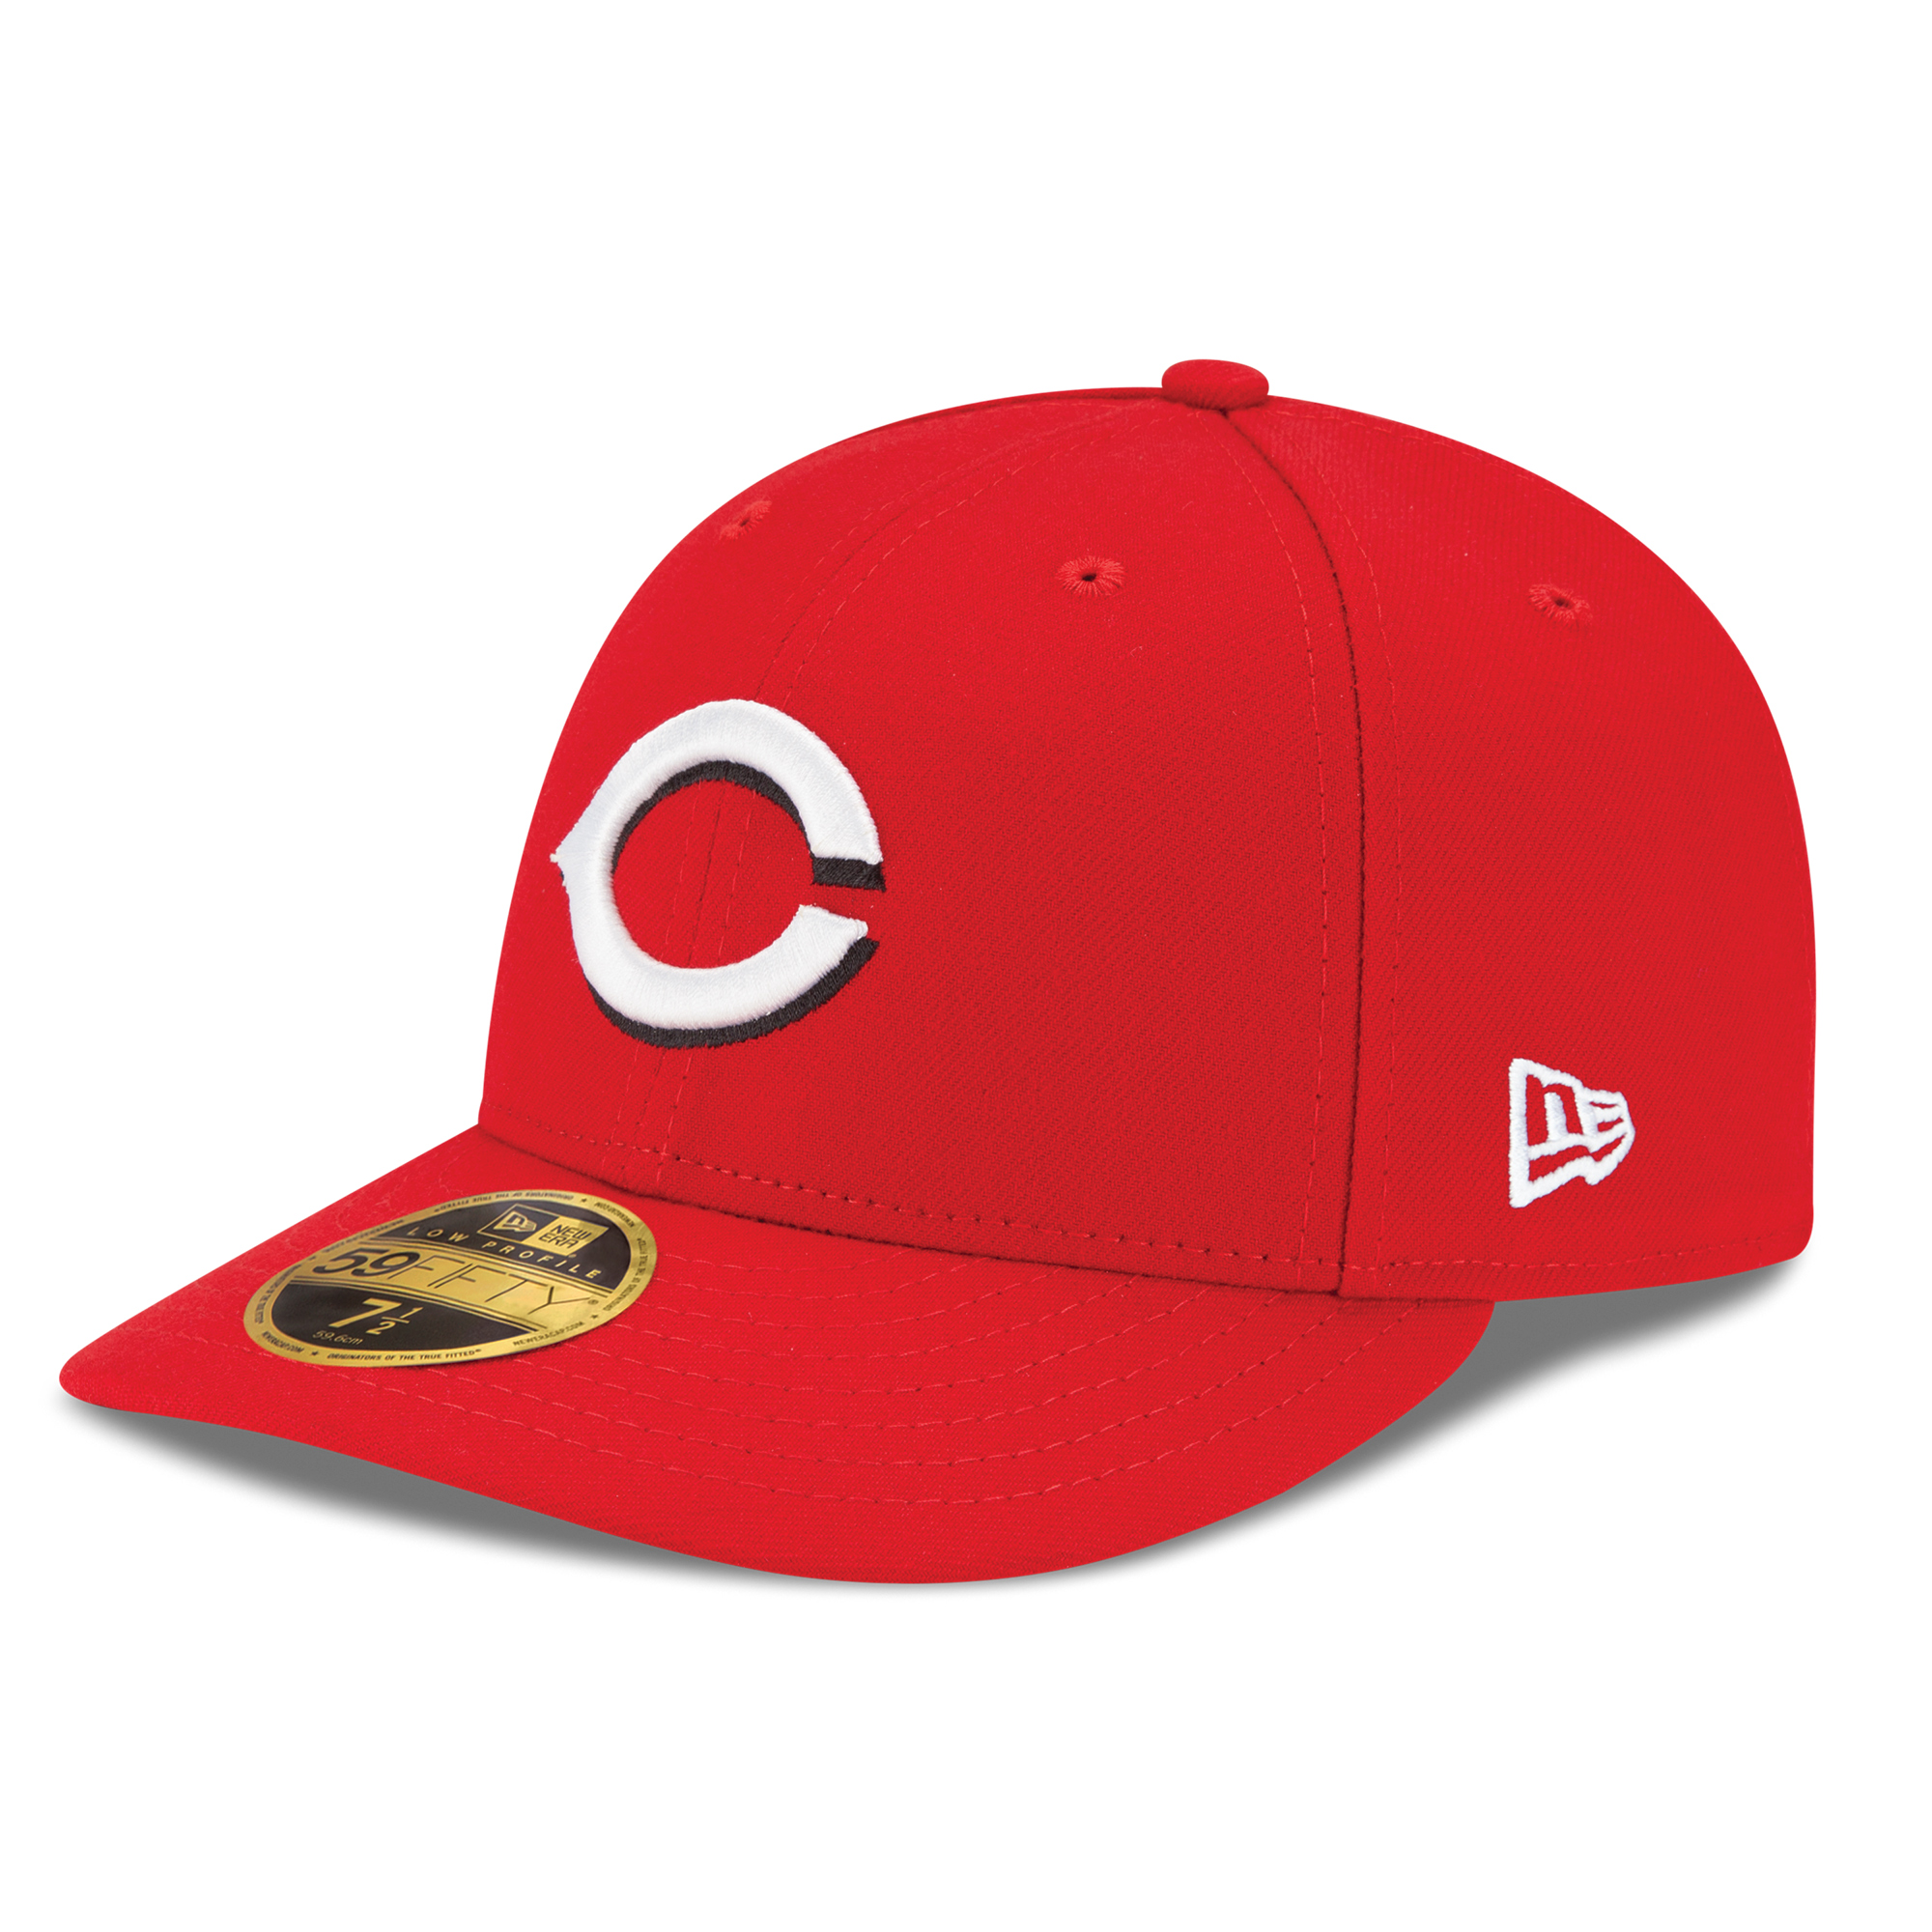 Cincinnati Reds New Era Authentic Collection On Field Low Profile Home 59FIFTY Fitted Hat - Red